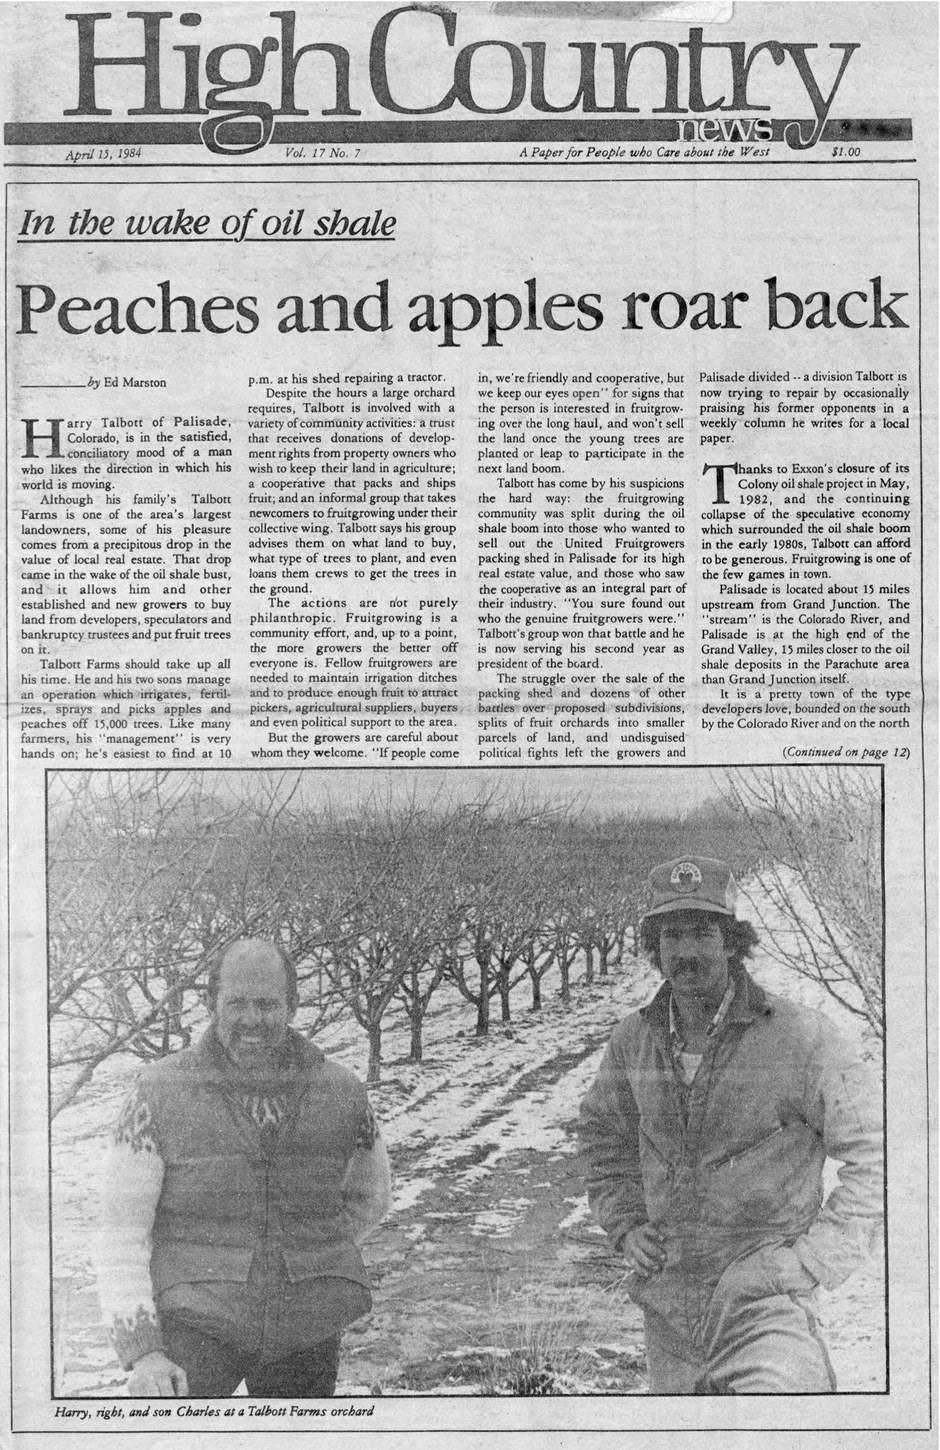 Peaches and apples roar back